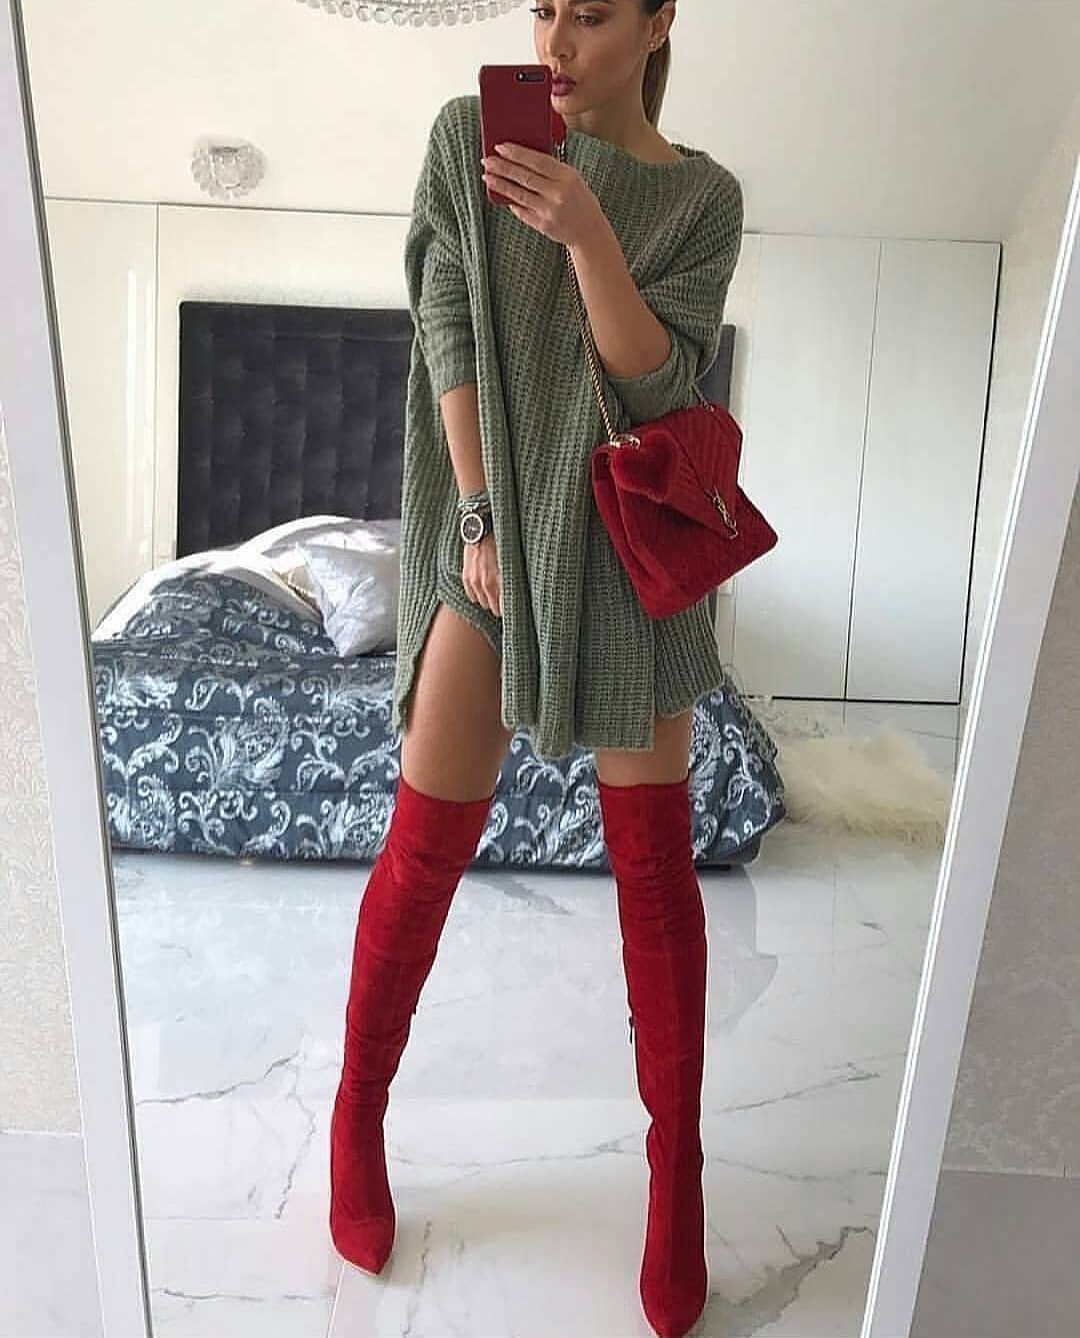 Khaki Green Sweaterdress And Red Suede OTK Boots For Fall 2020